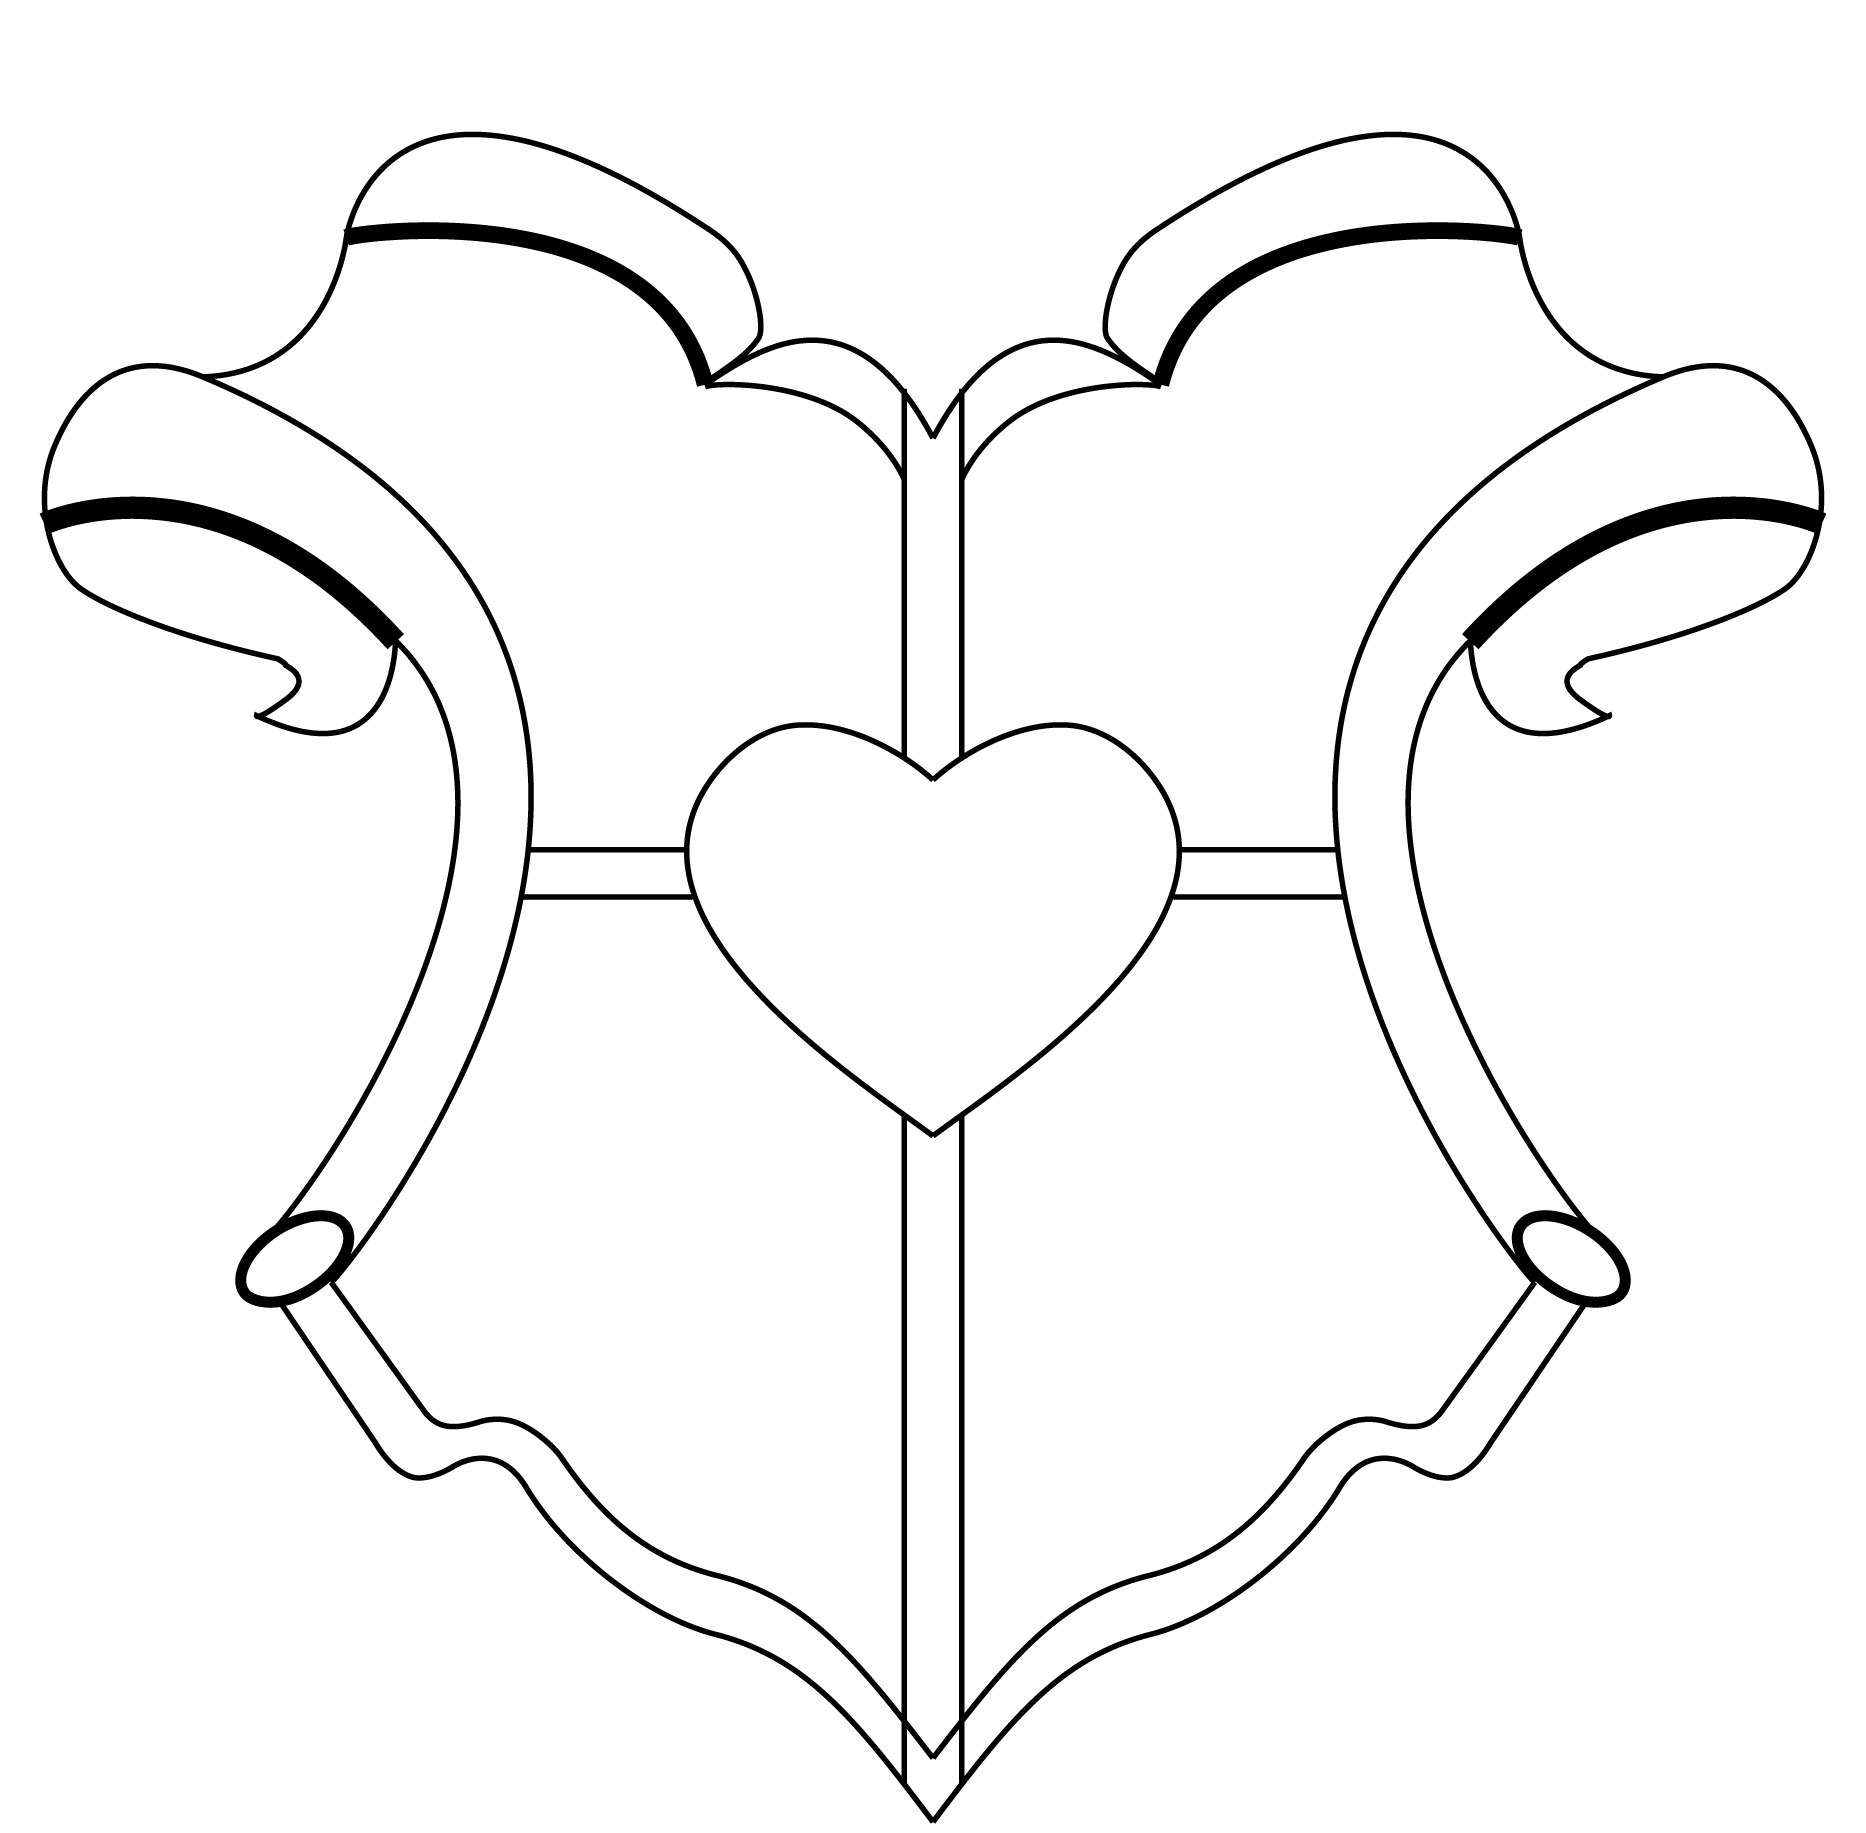 blank family crest - photo #11